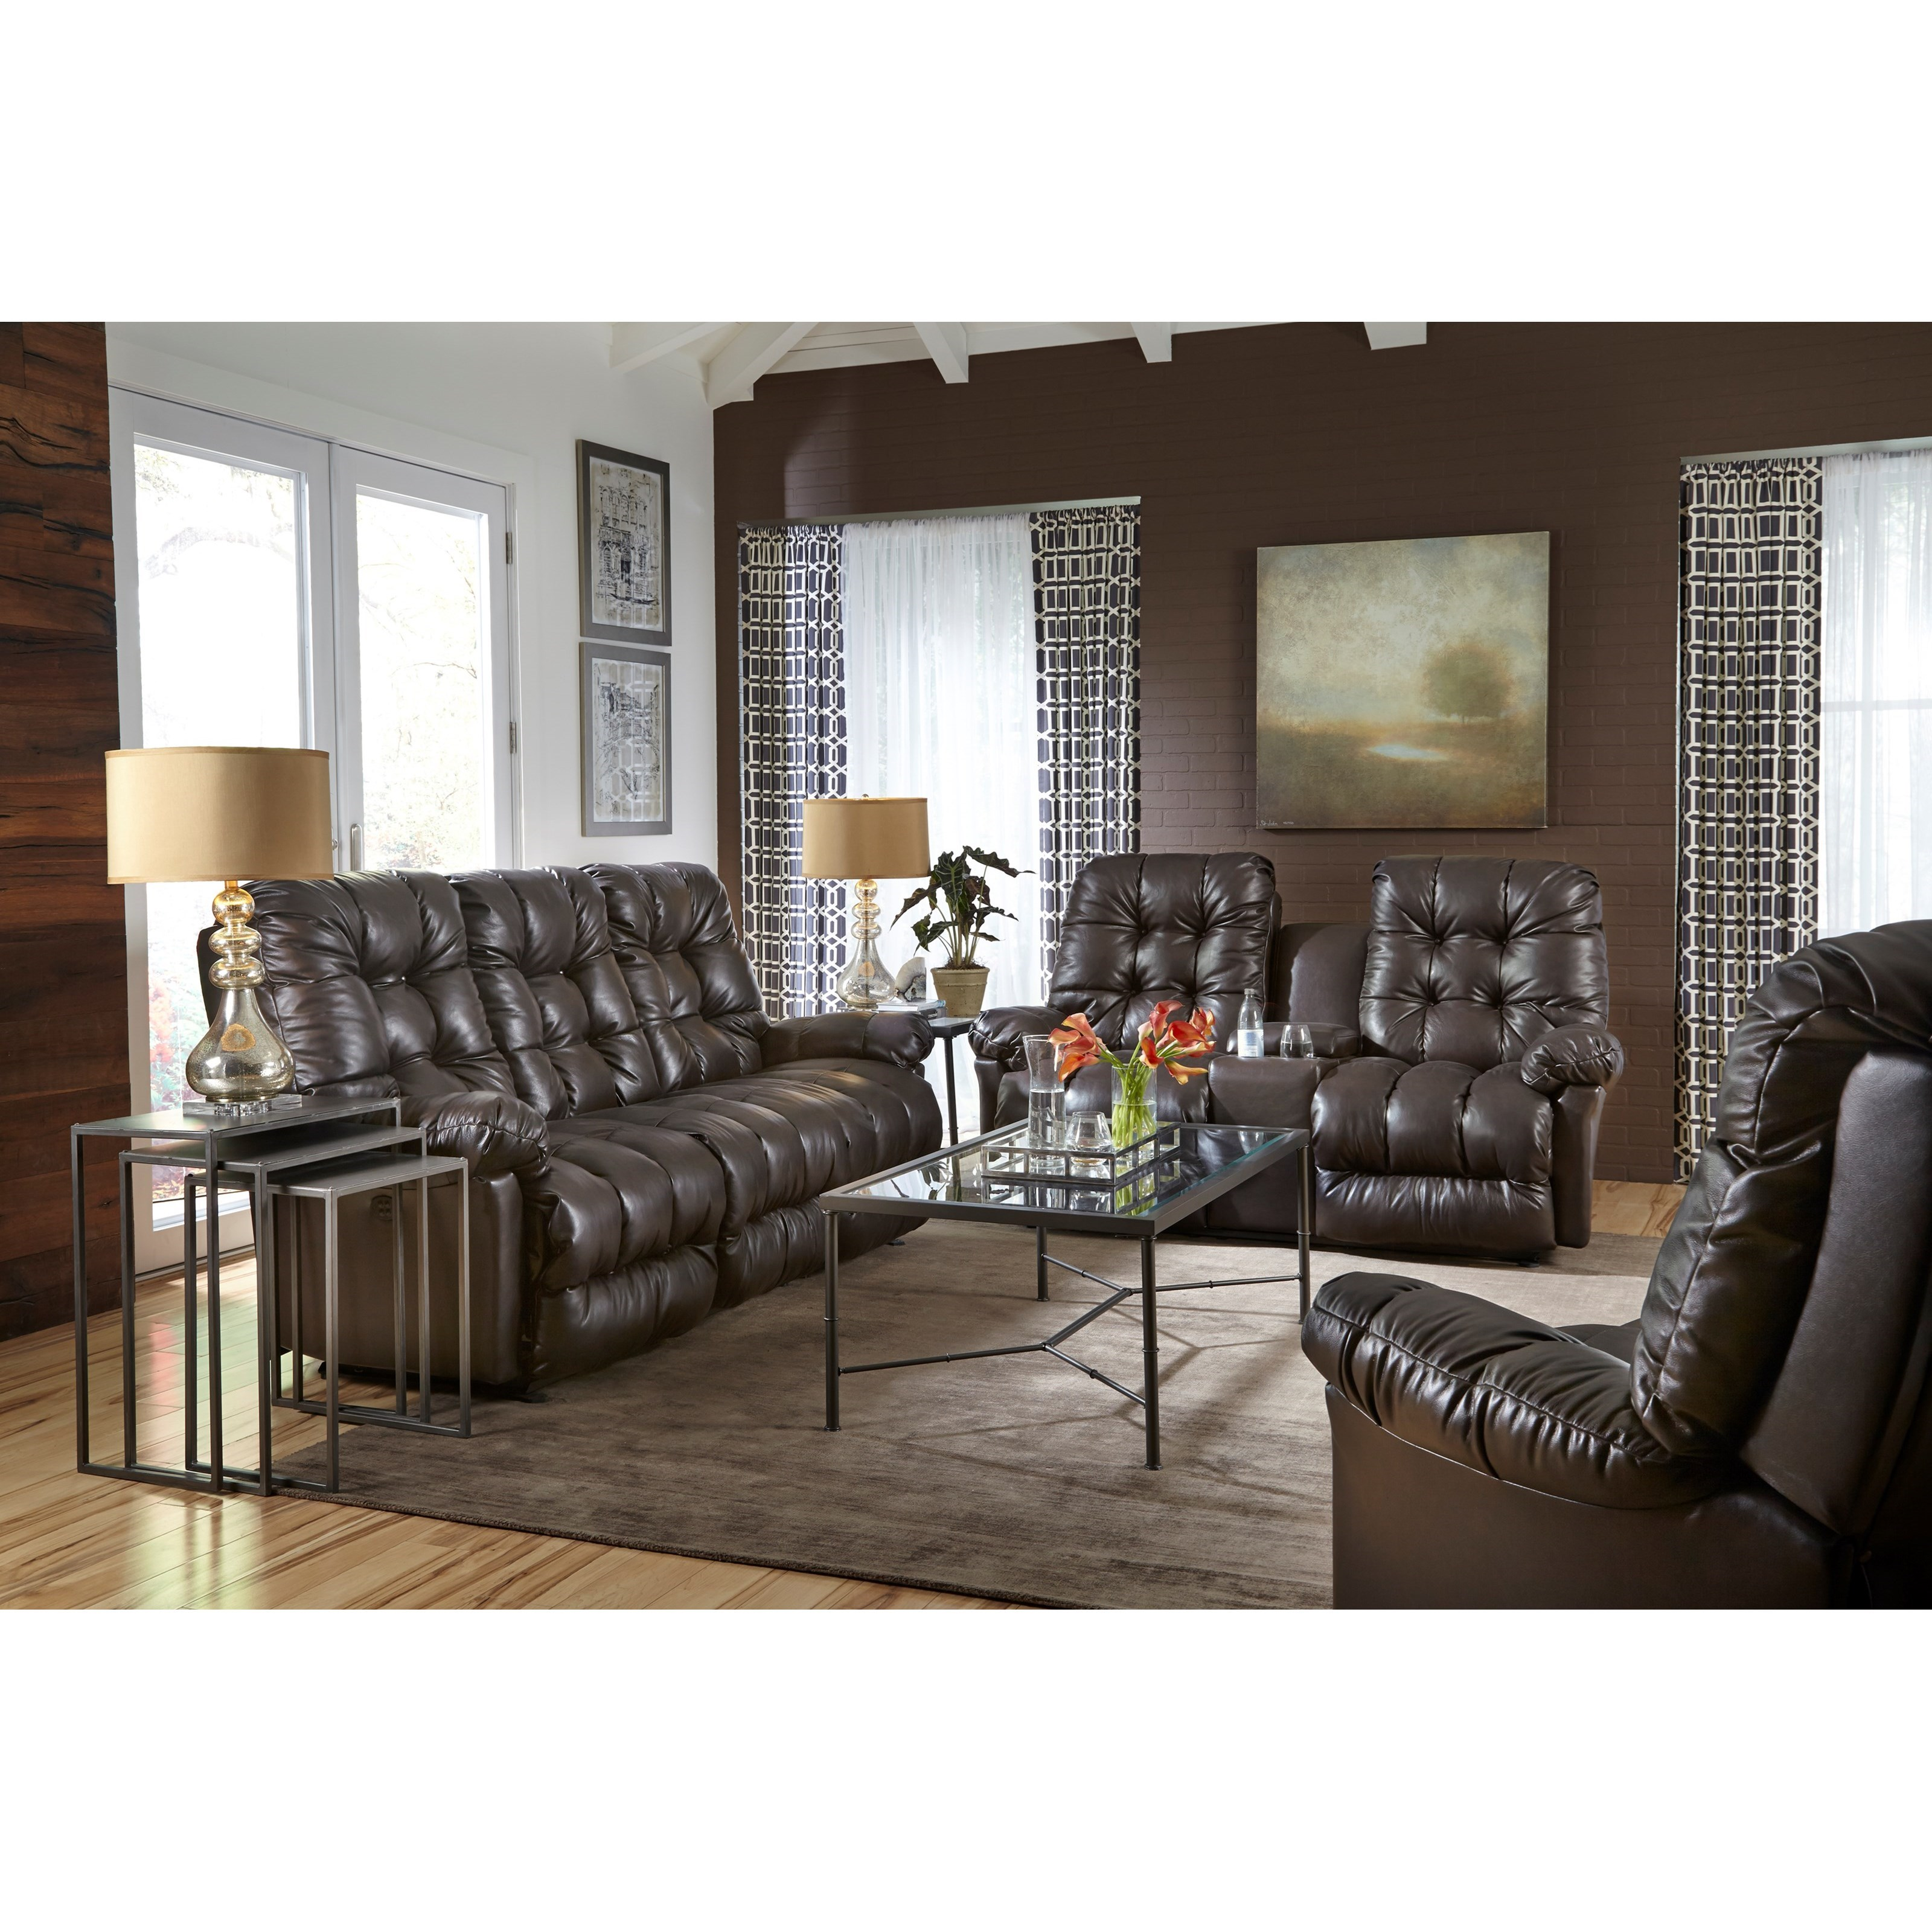 Everlasting Living Room Group by Best Home Furnishings at Alison Craig Home Furnishings